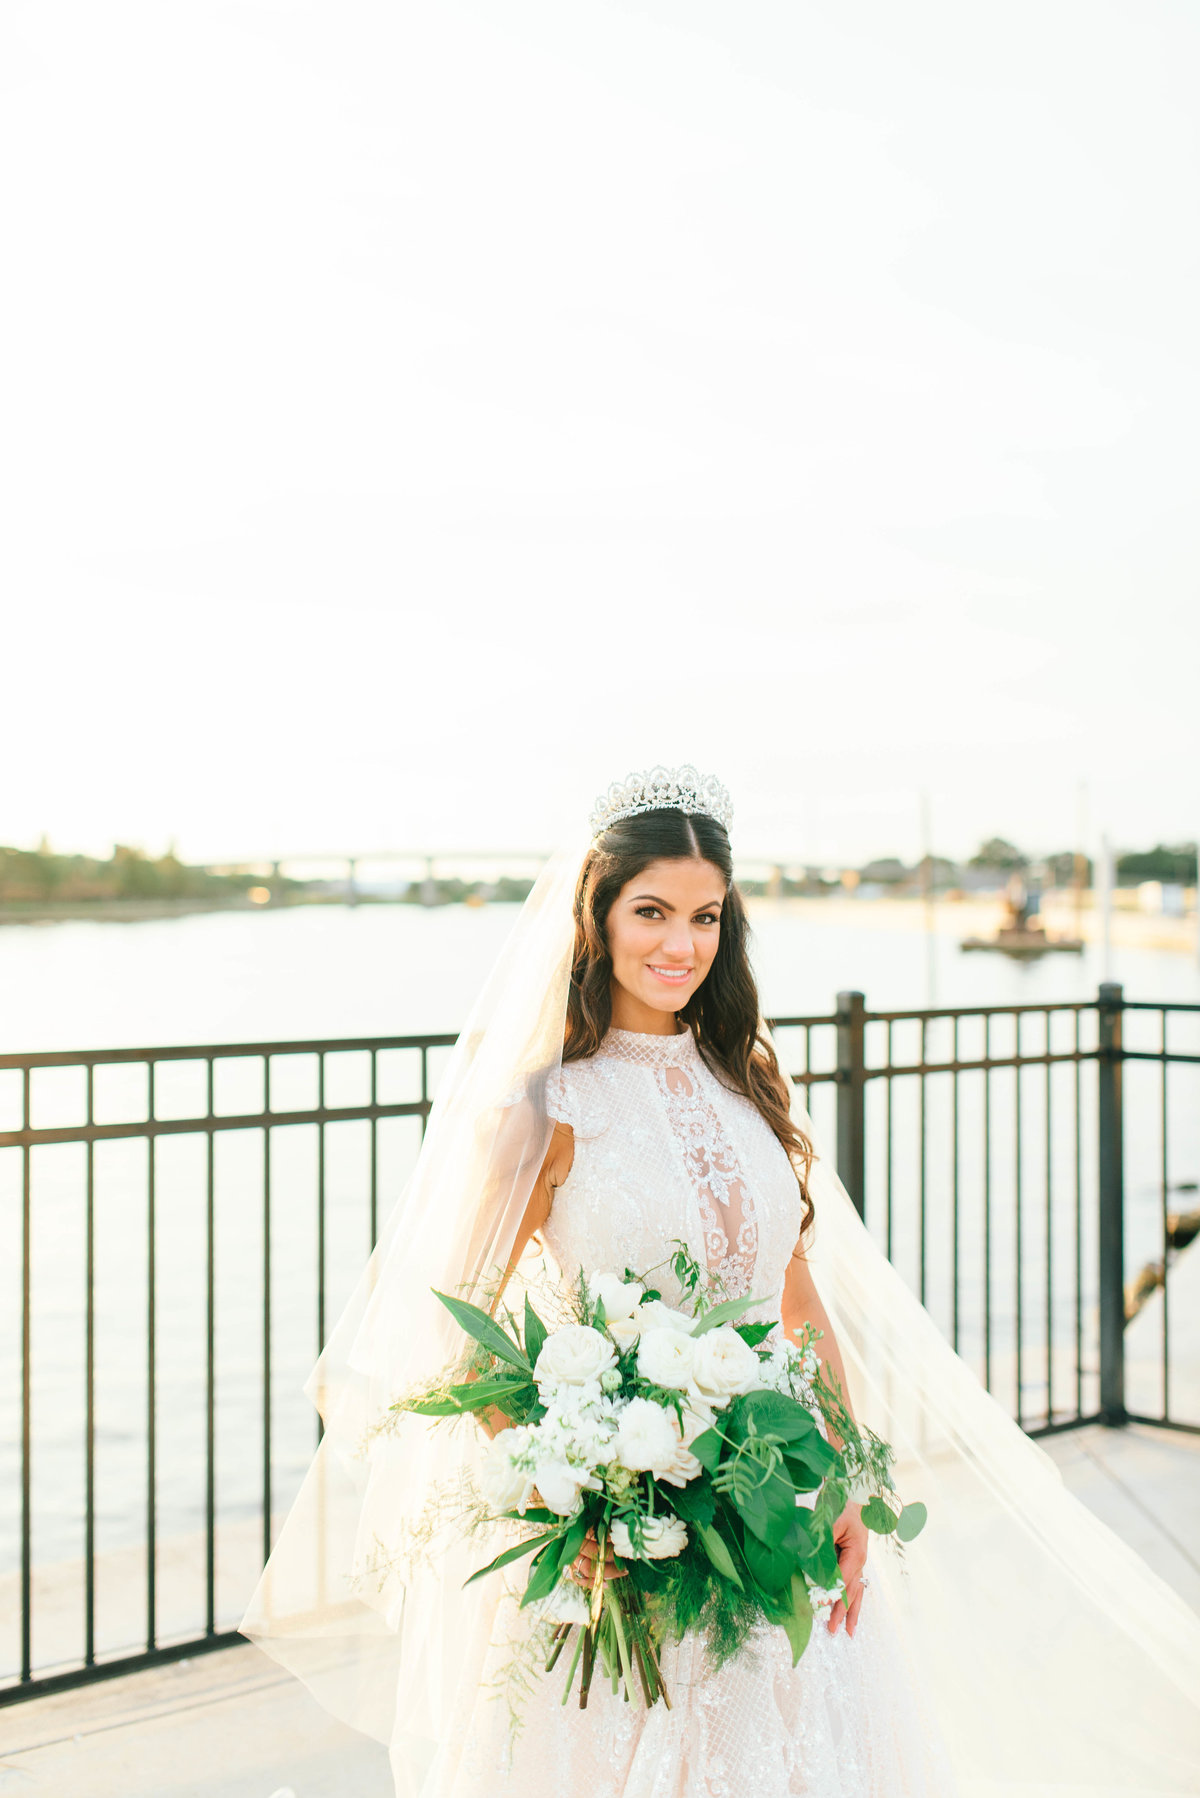 Bride wearing Galia lahav luxury gown